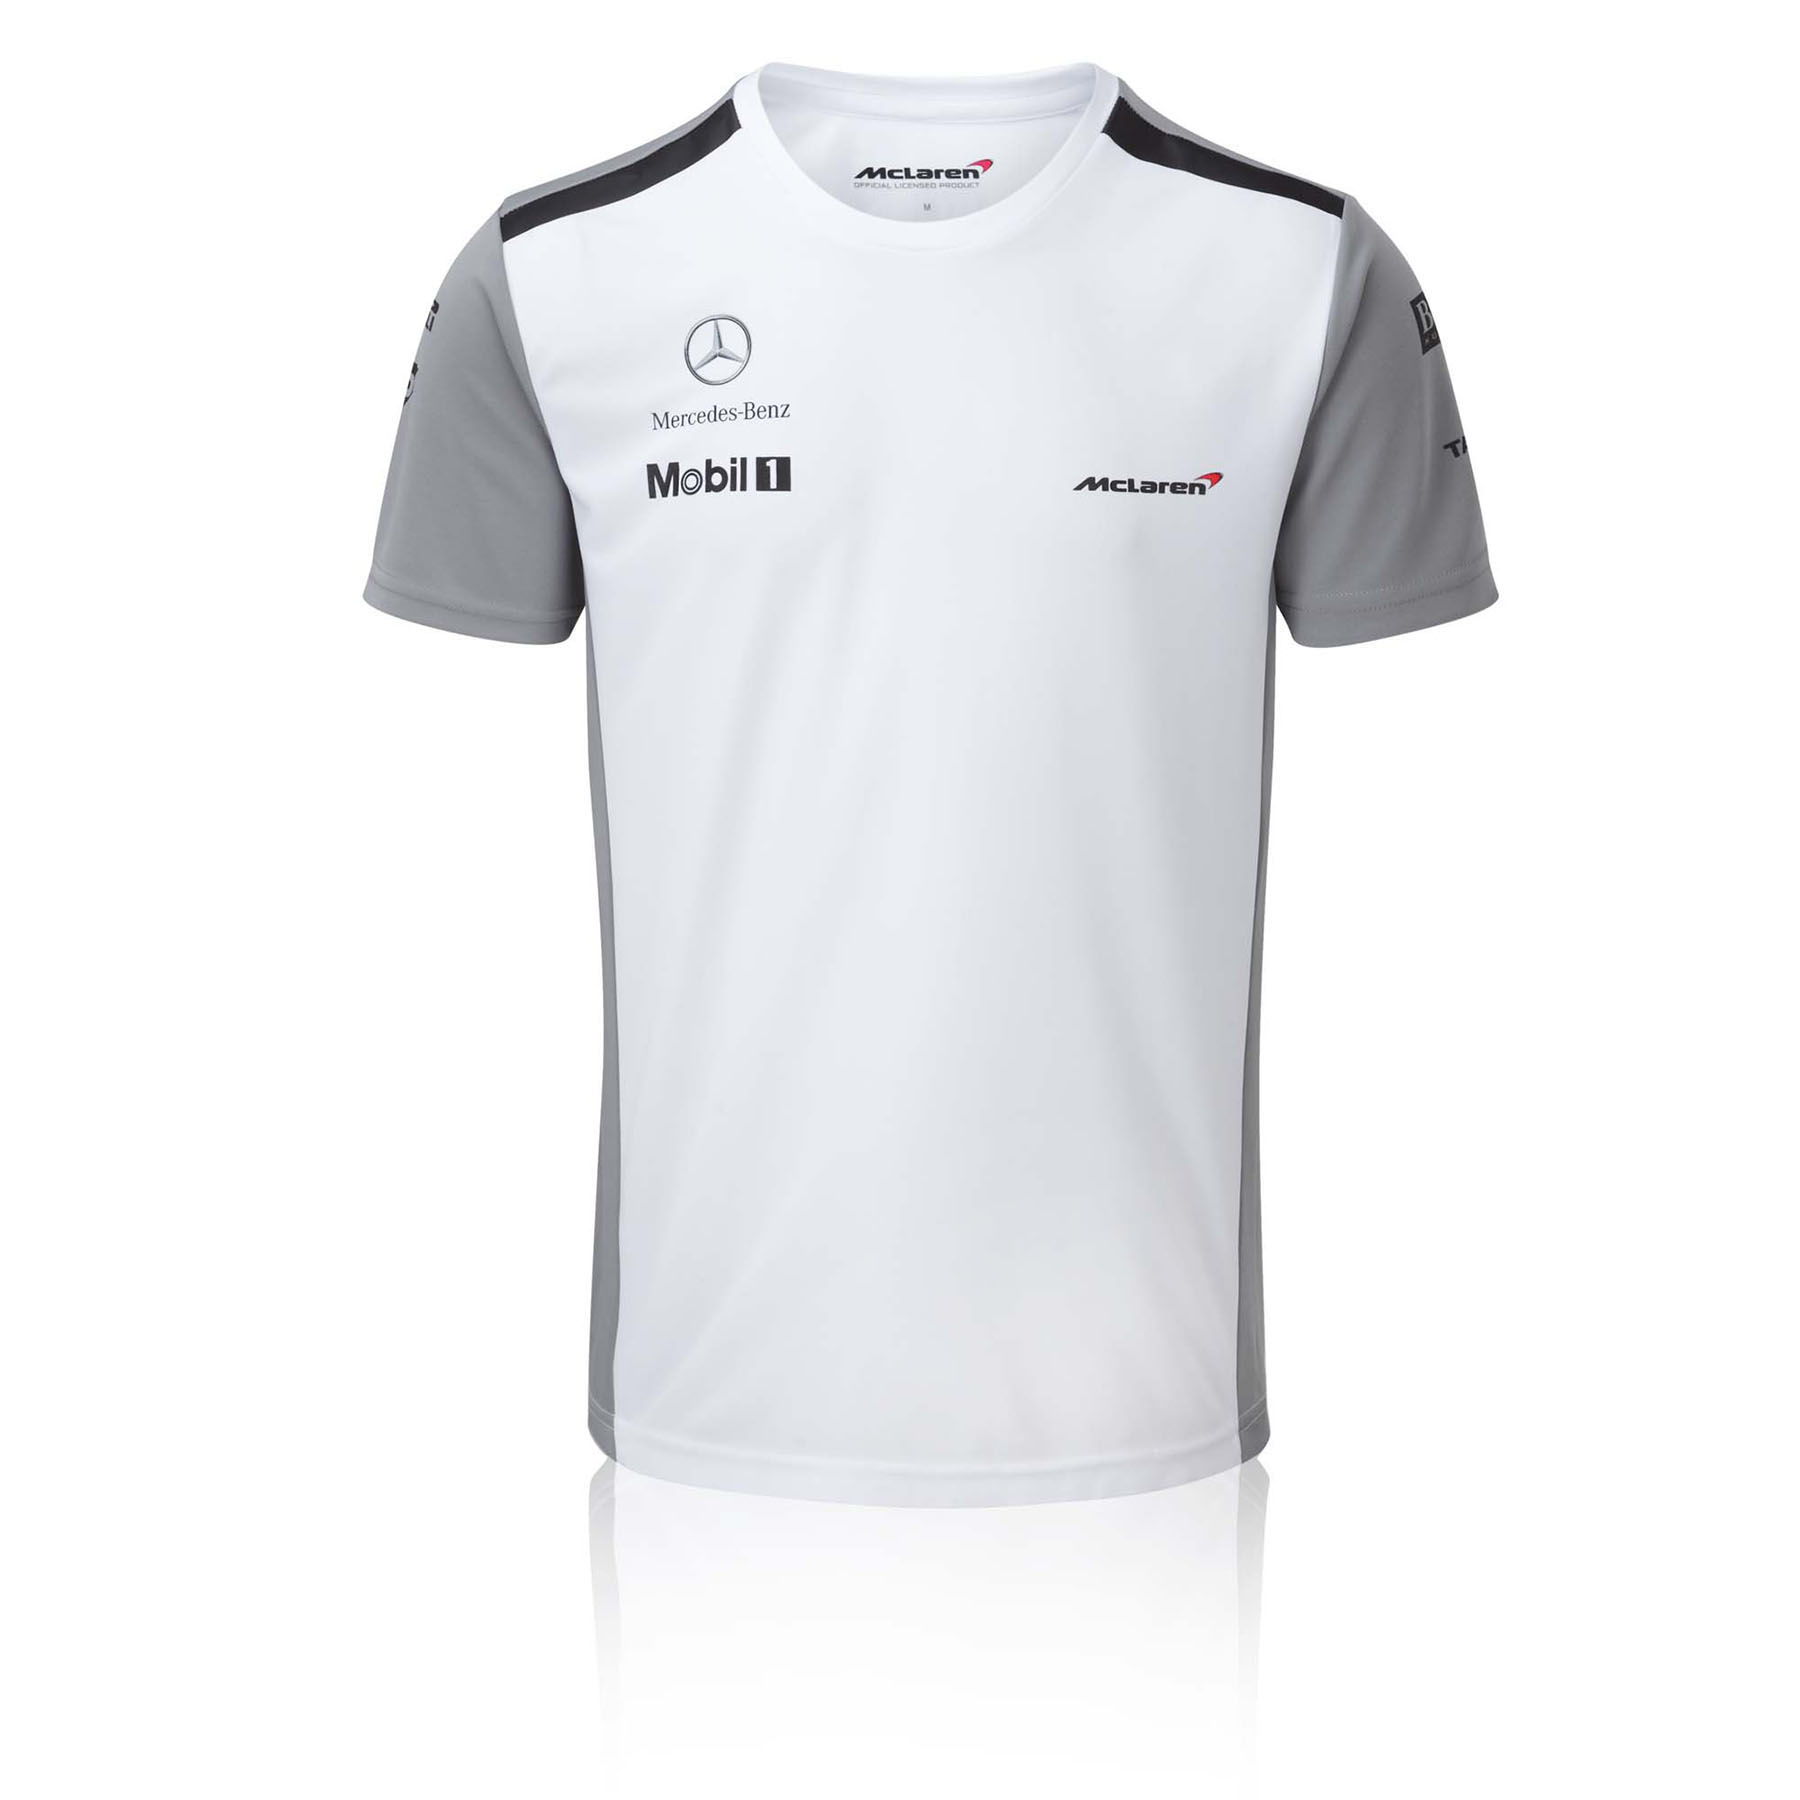 McLaren Mercedes 2014 Technical Team T-Shirt - Kids